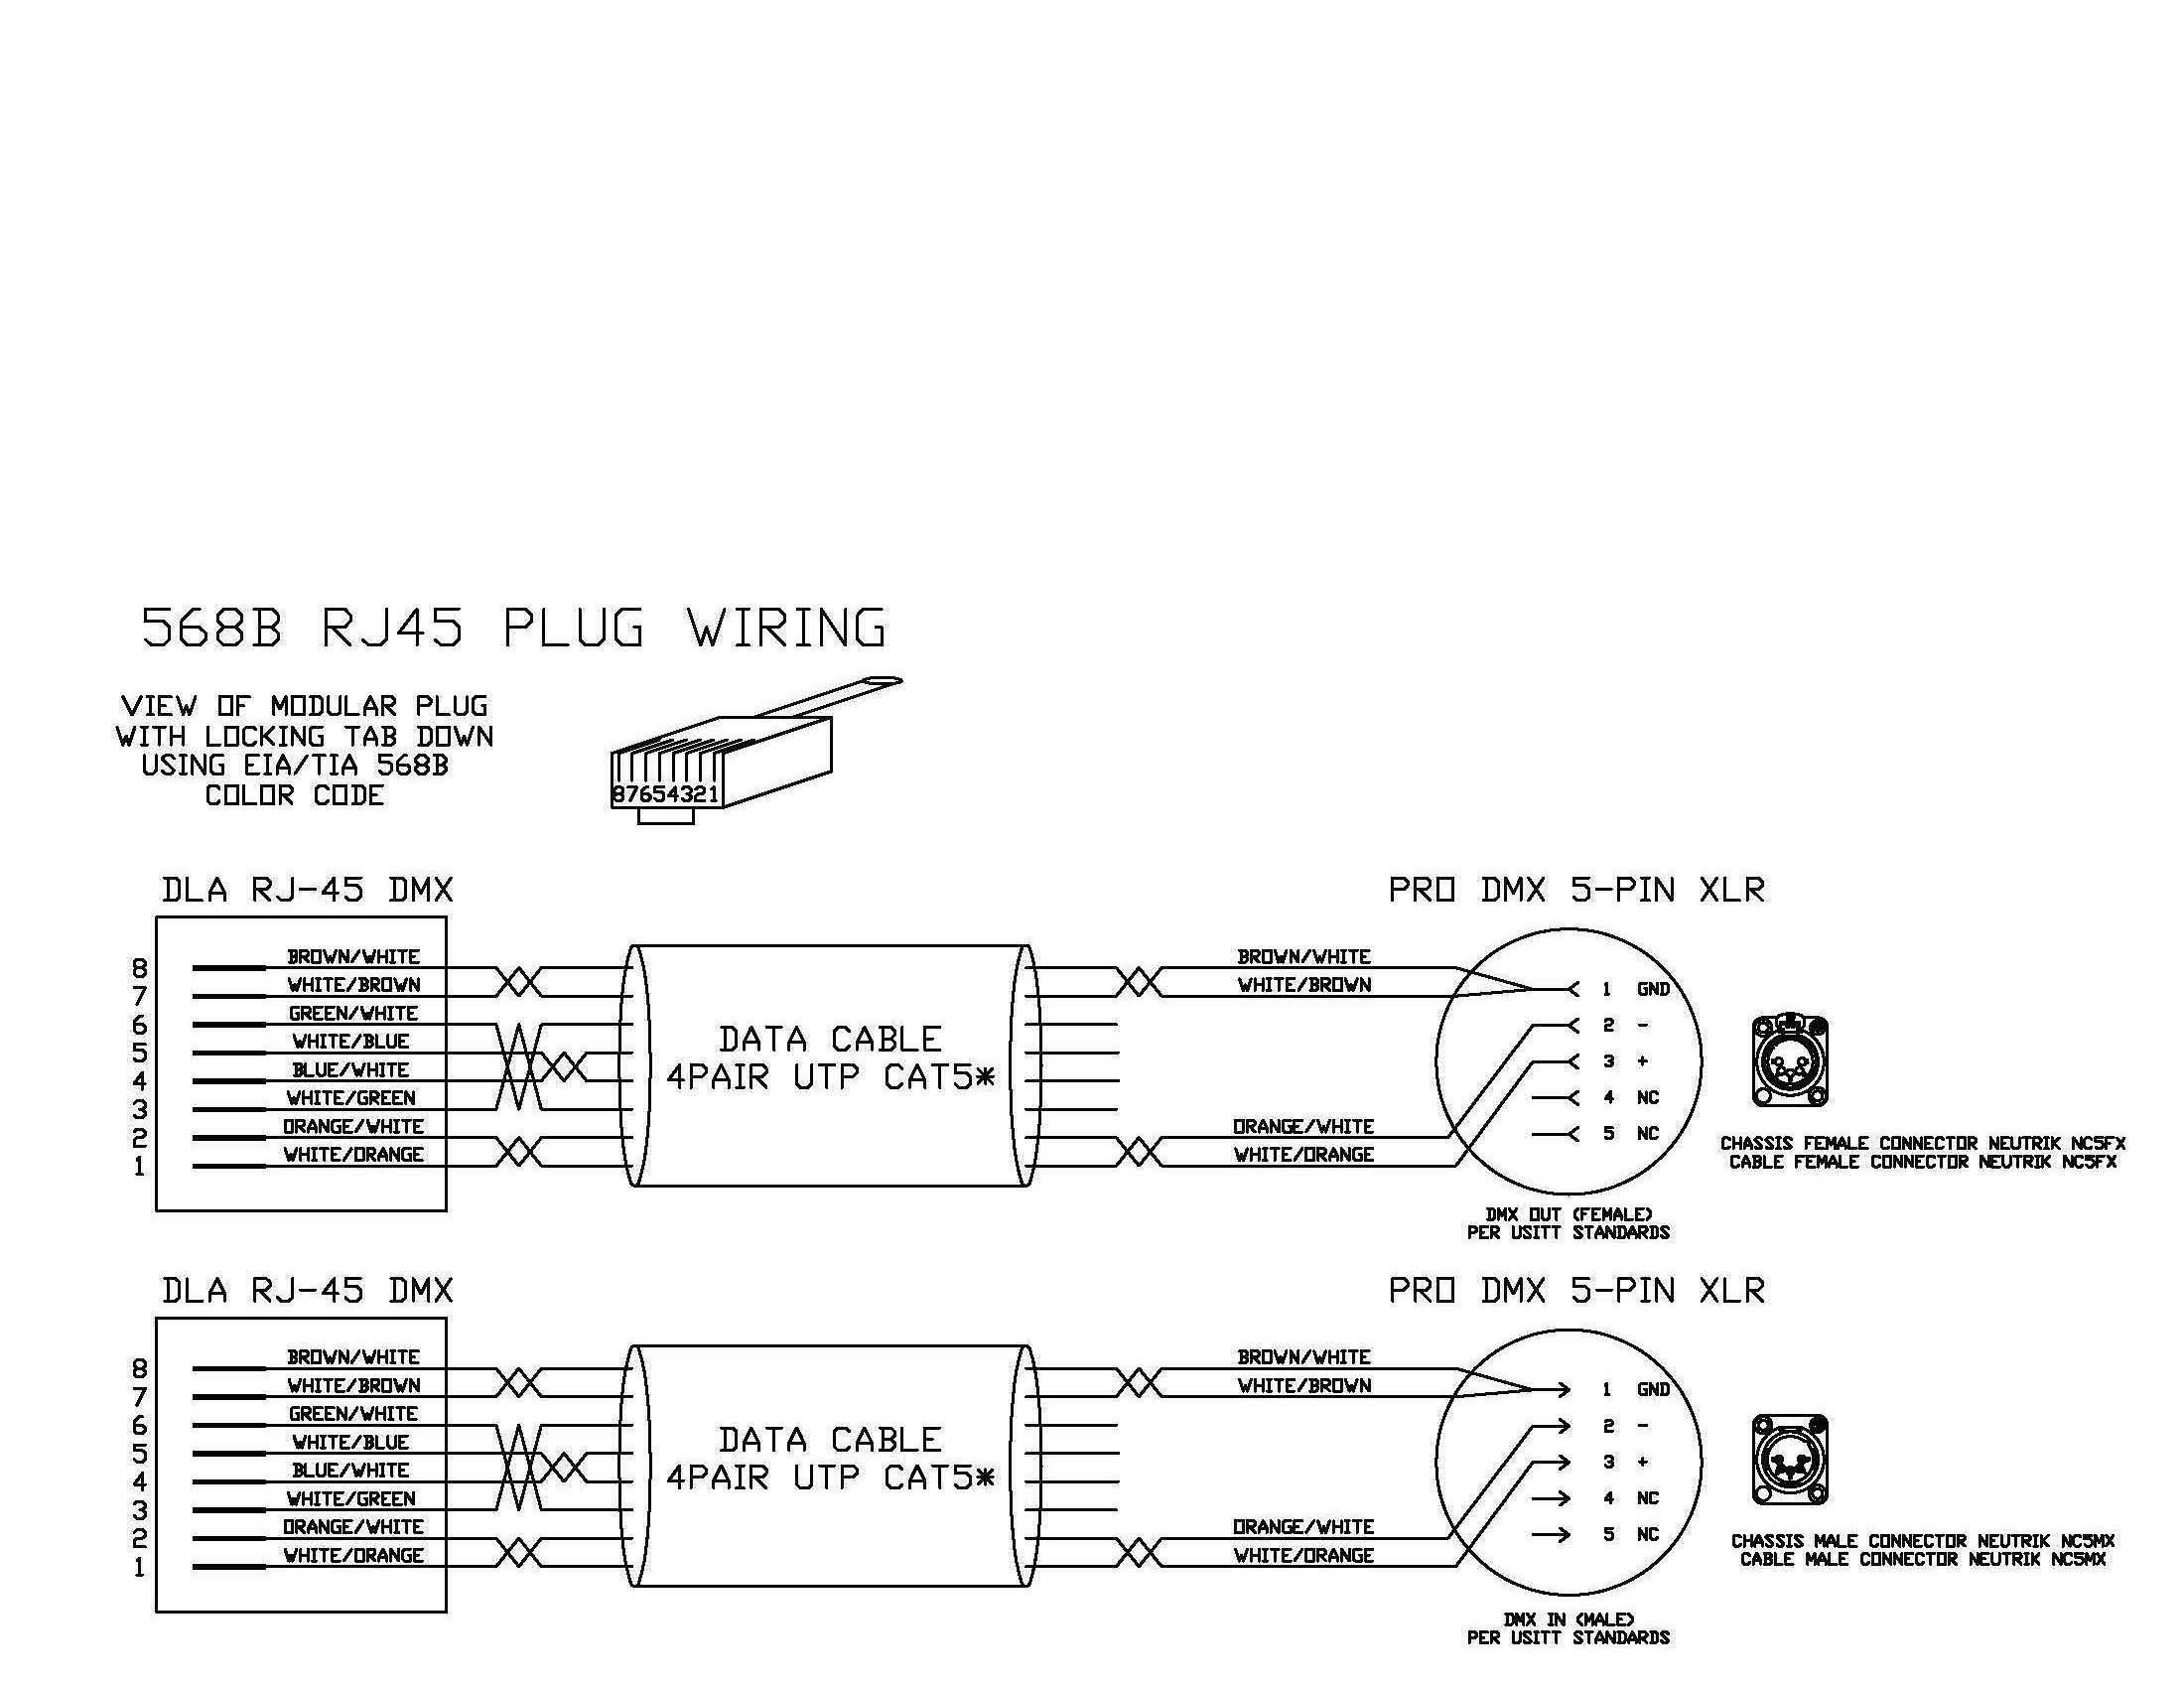 Xlr To Rj45 Wiring Diagram Xlr Electrical Wiring Diagrams | Cables, conexiones y más